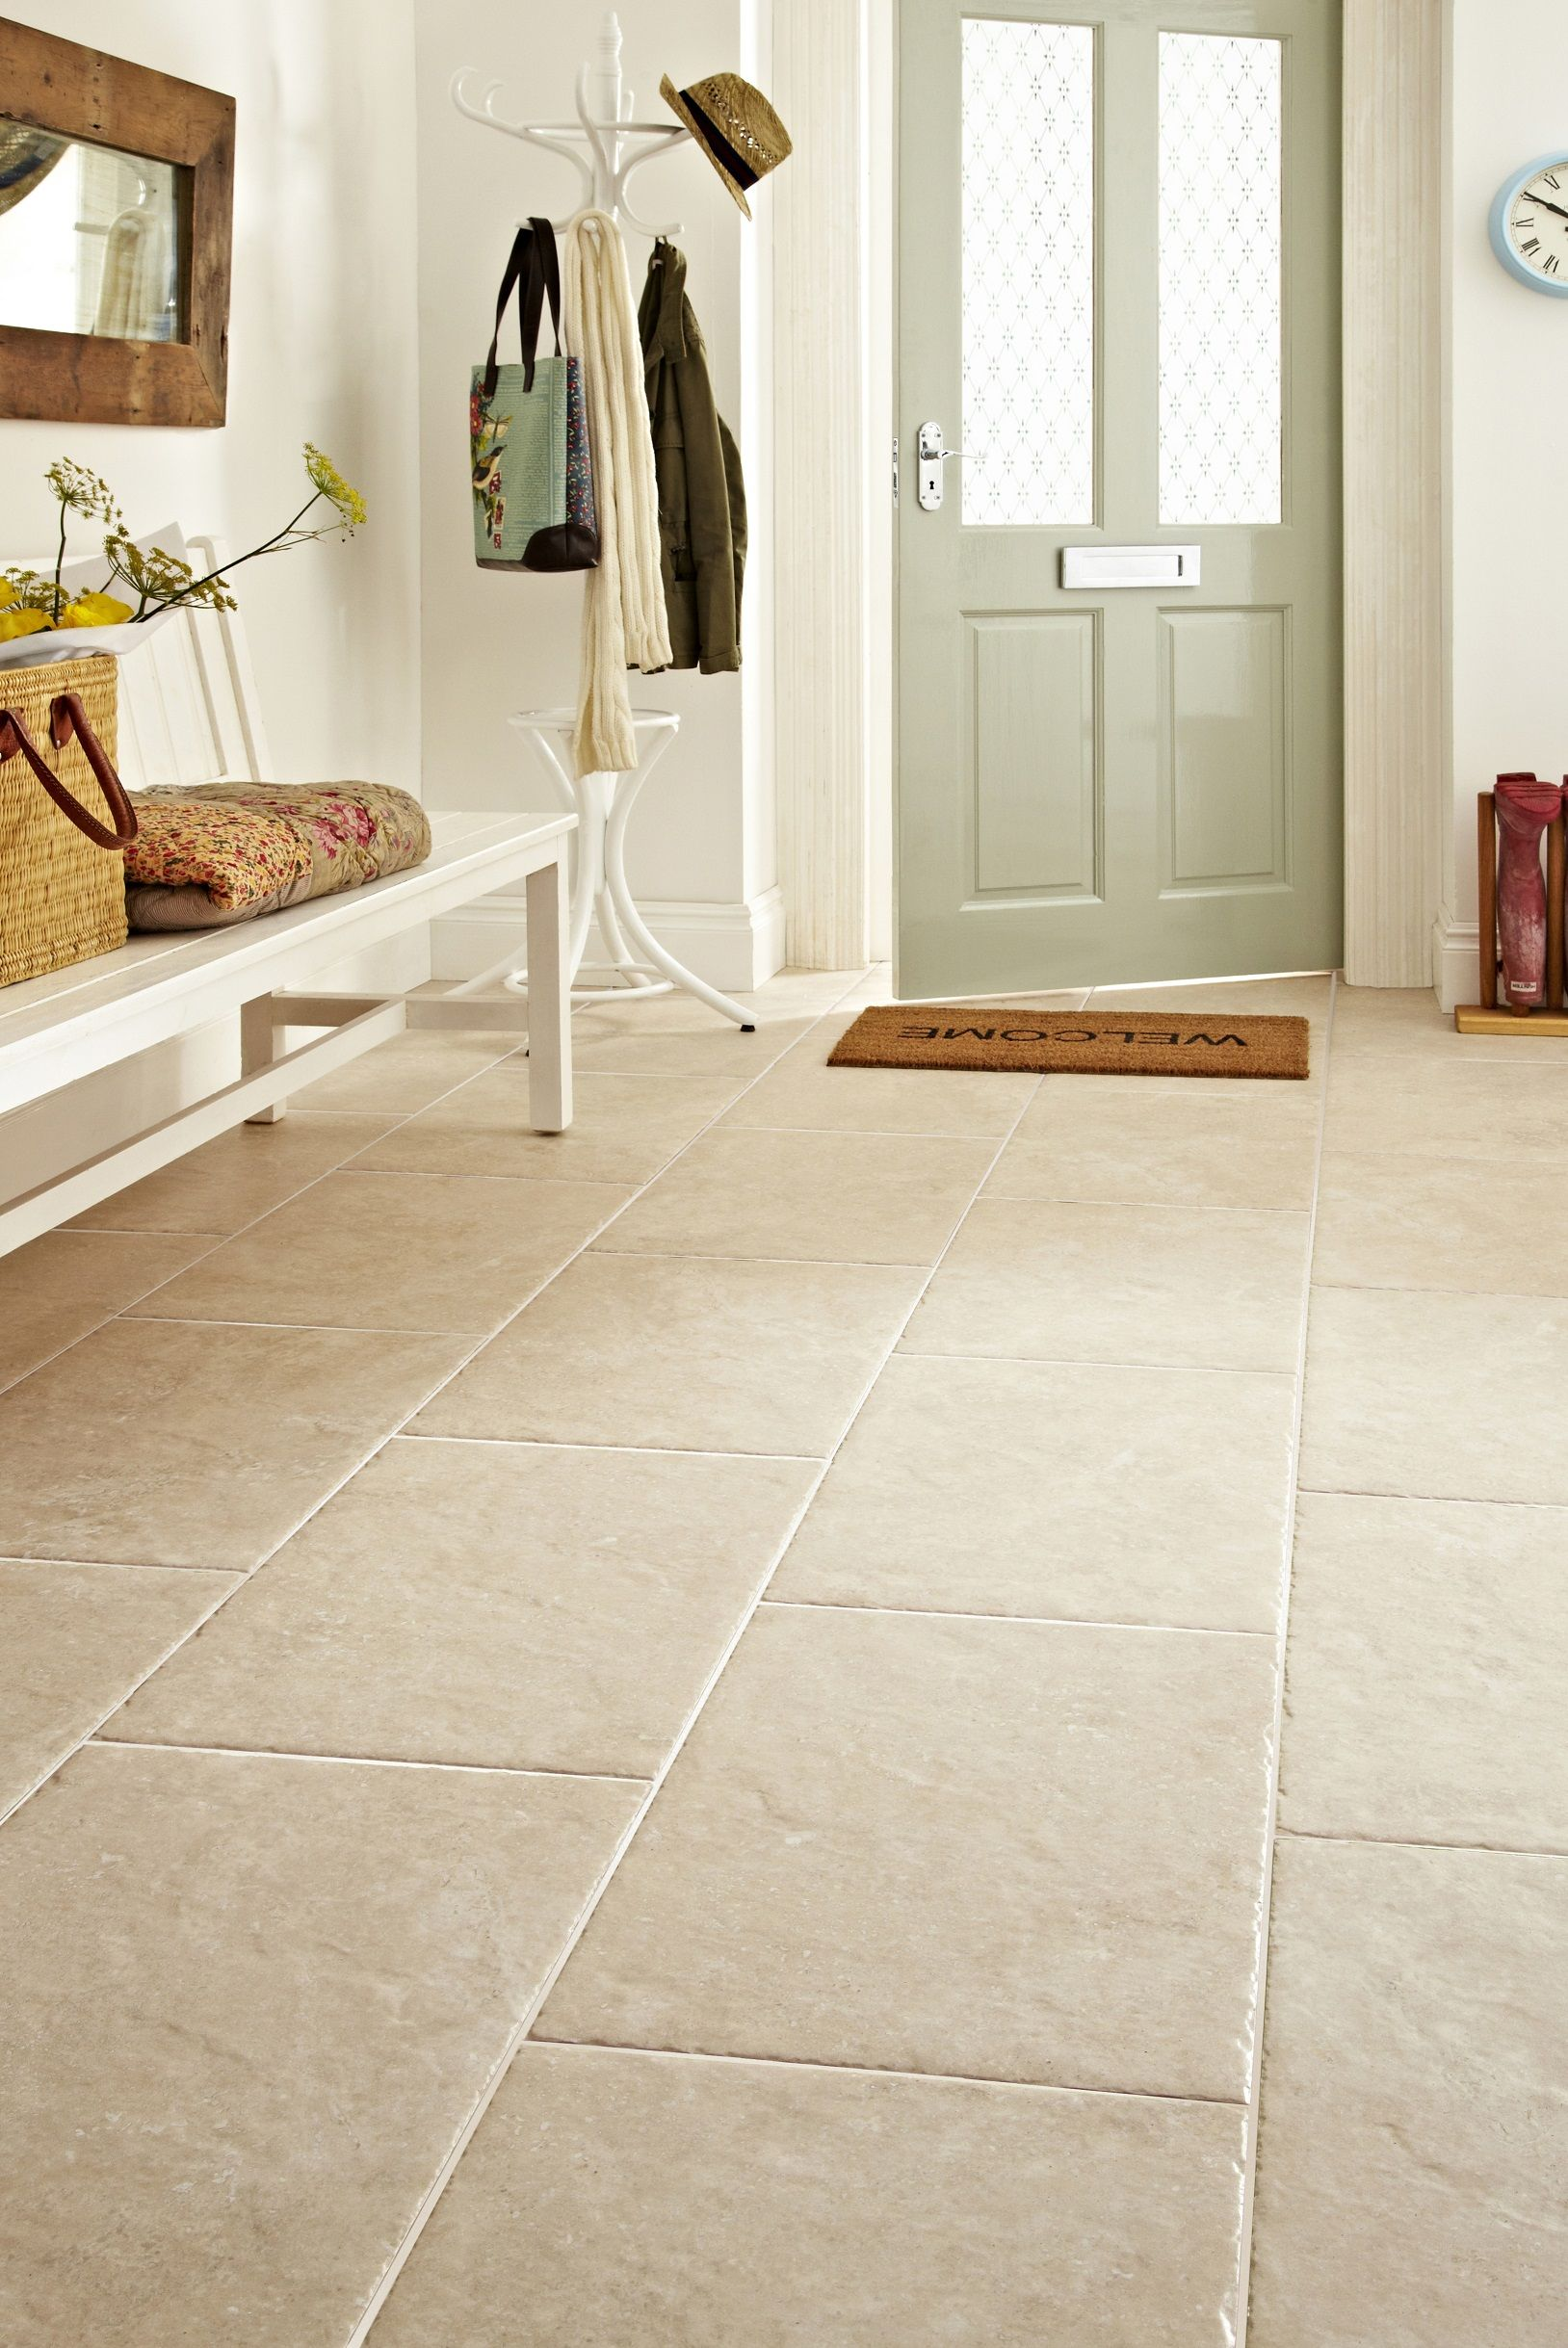 Devon Bone From Topps Tiles